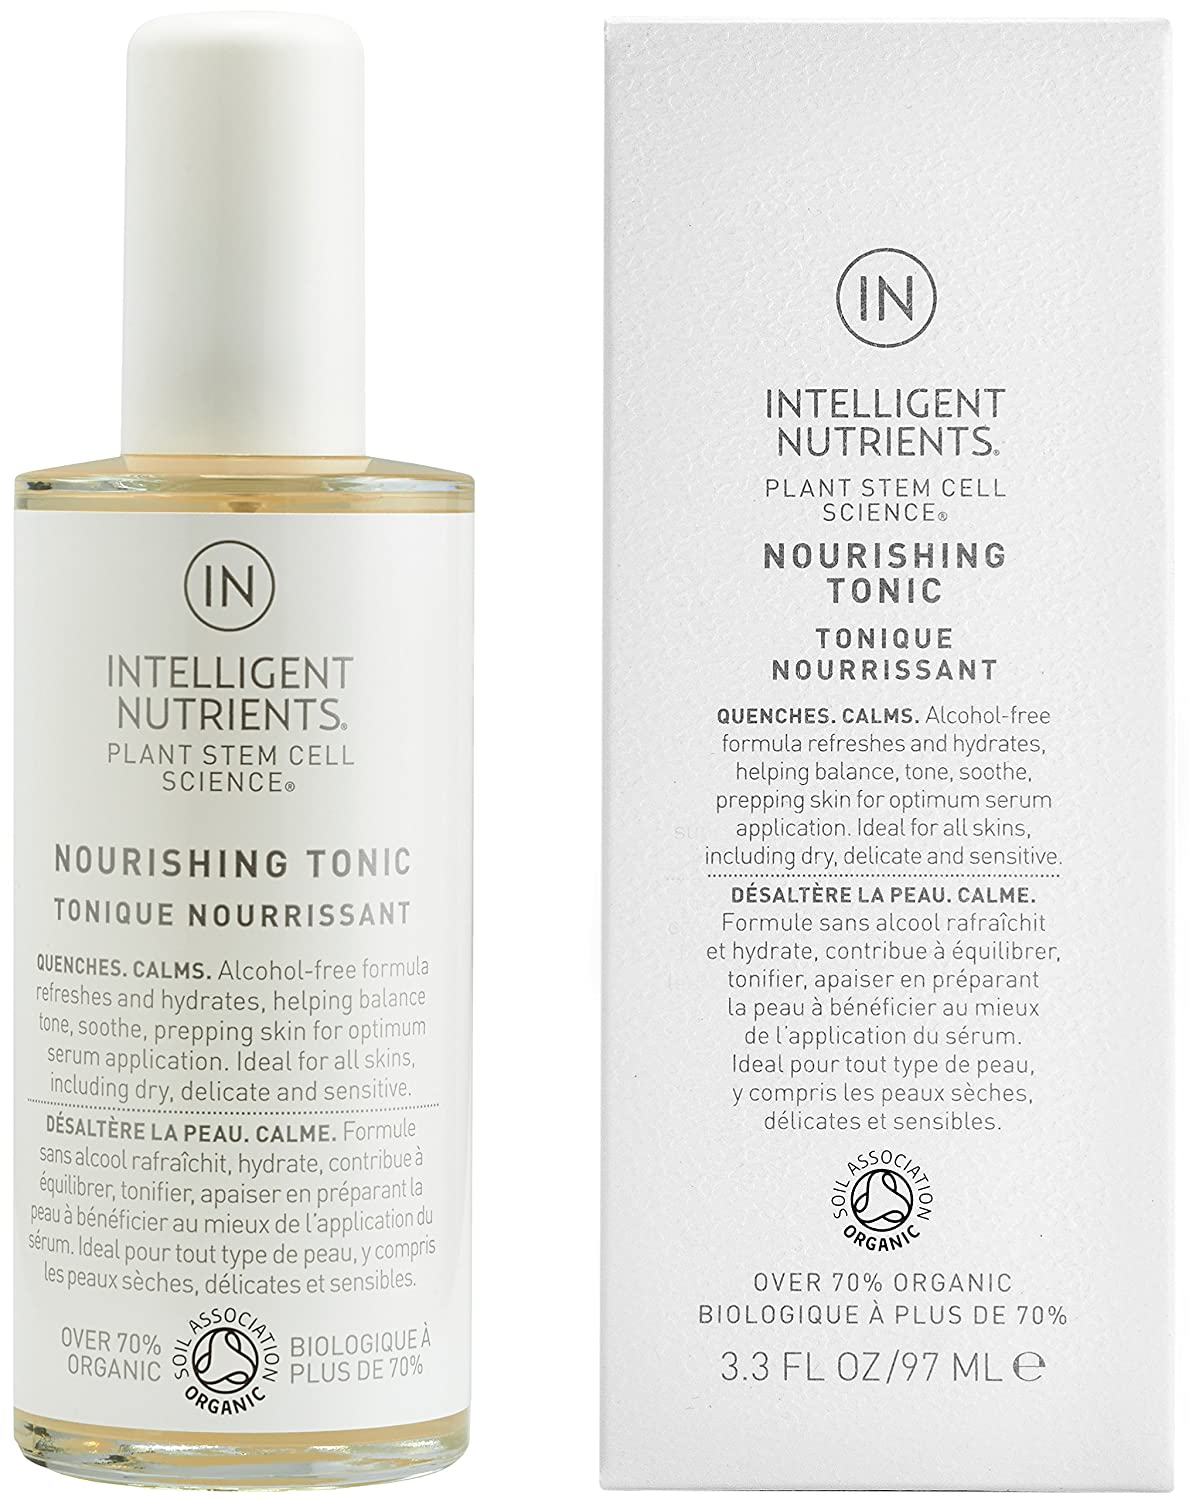 Intelligent Nutrients - Nourishing Tonic for All Skin Types, Especially Dry Skin, 3.3oz